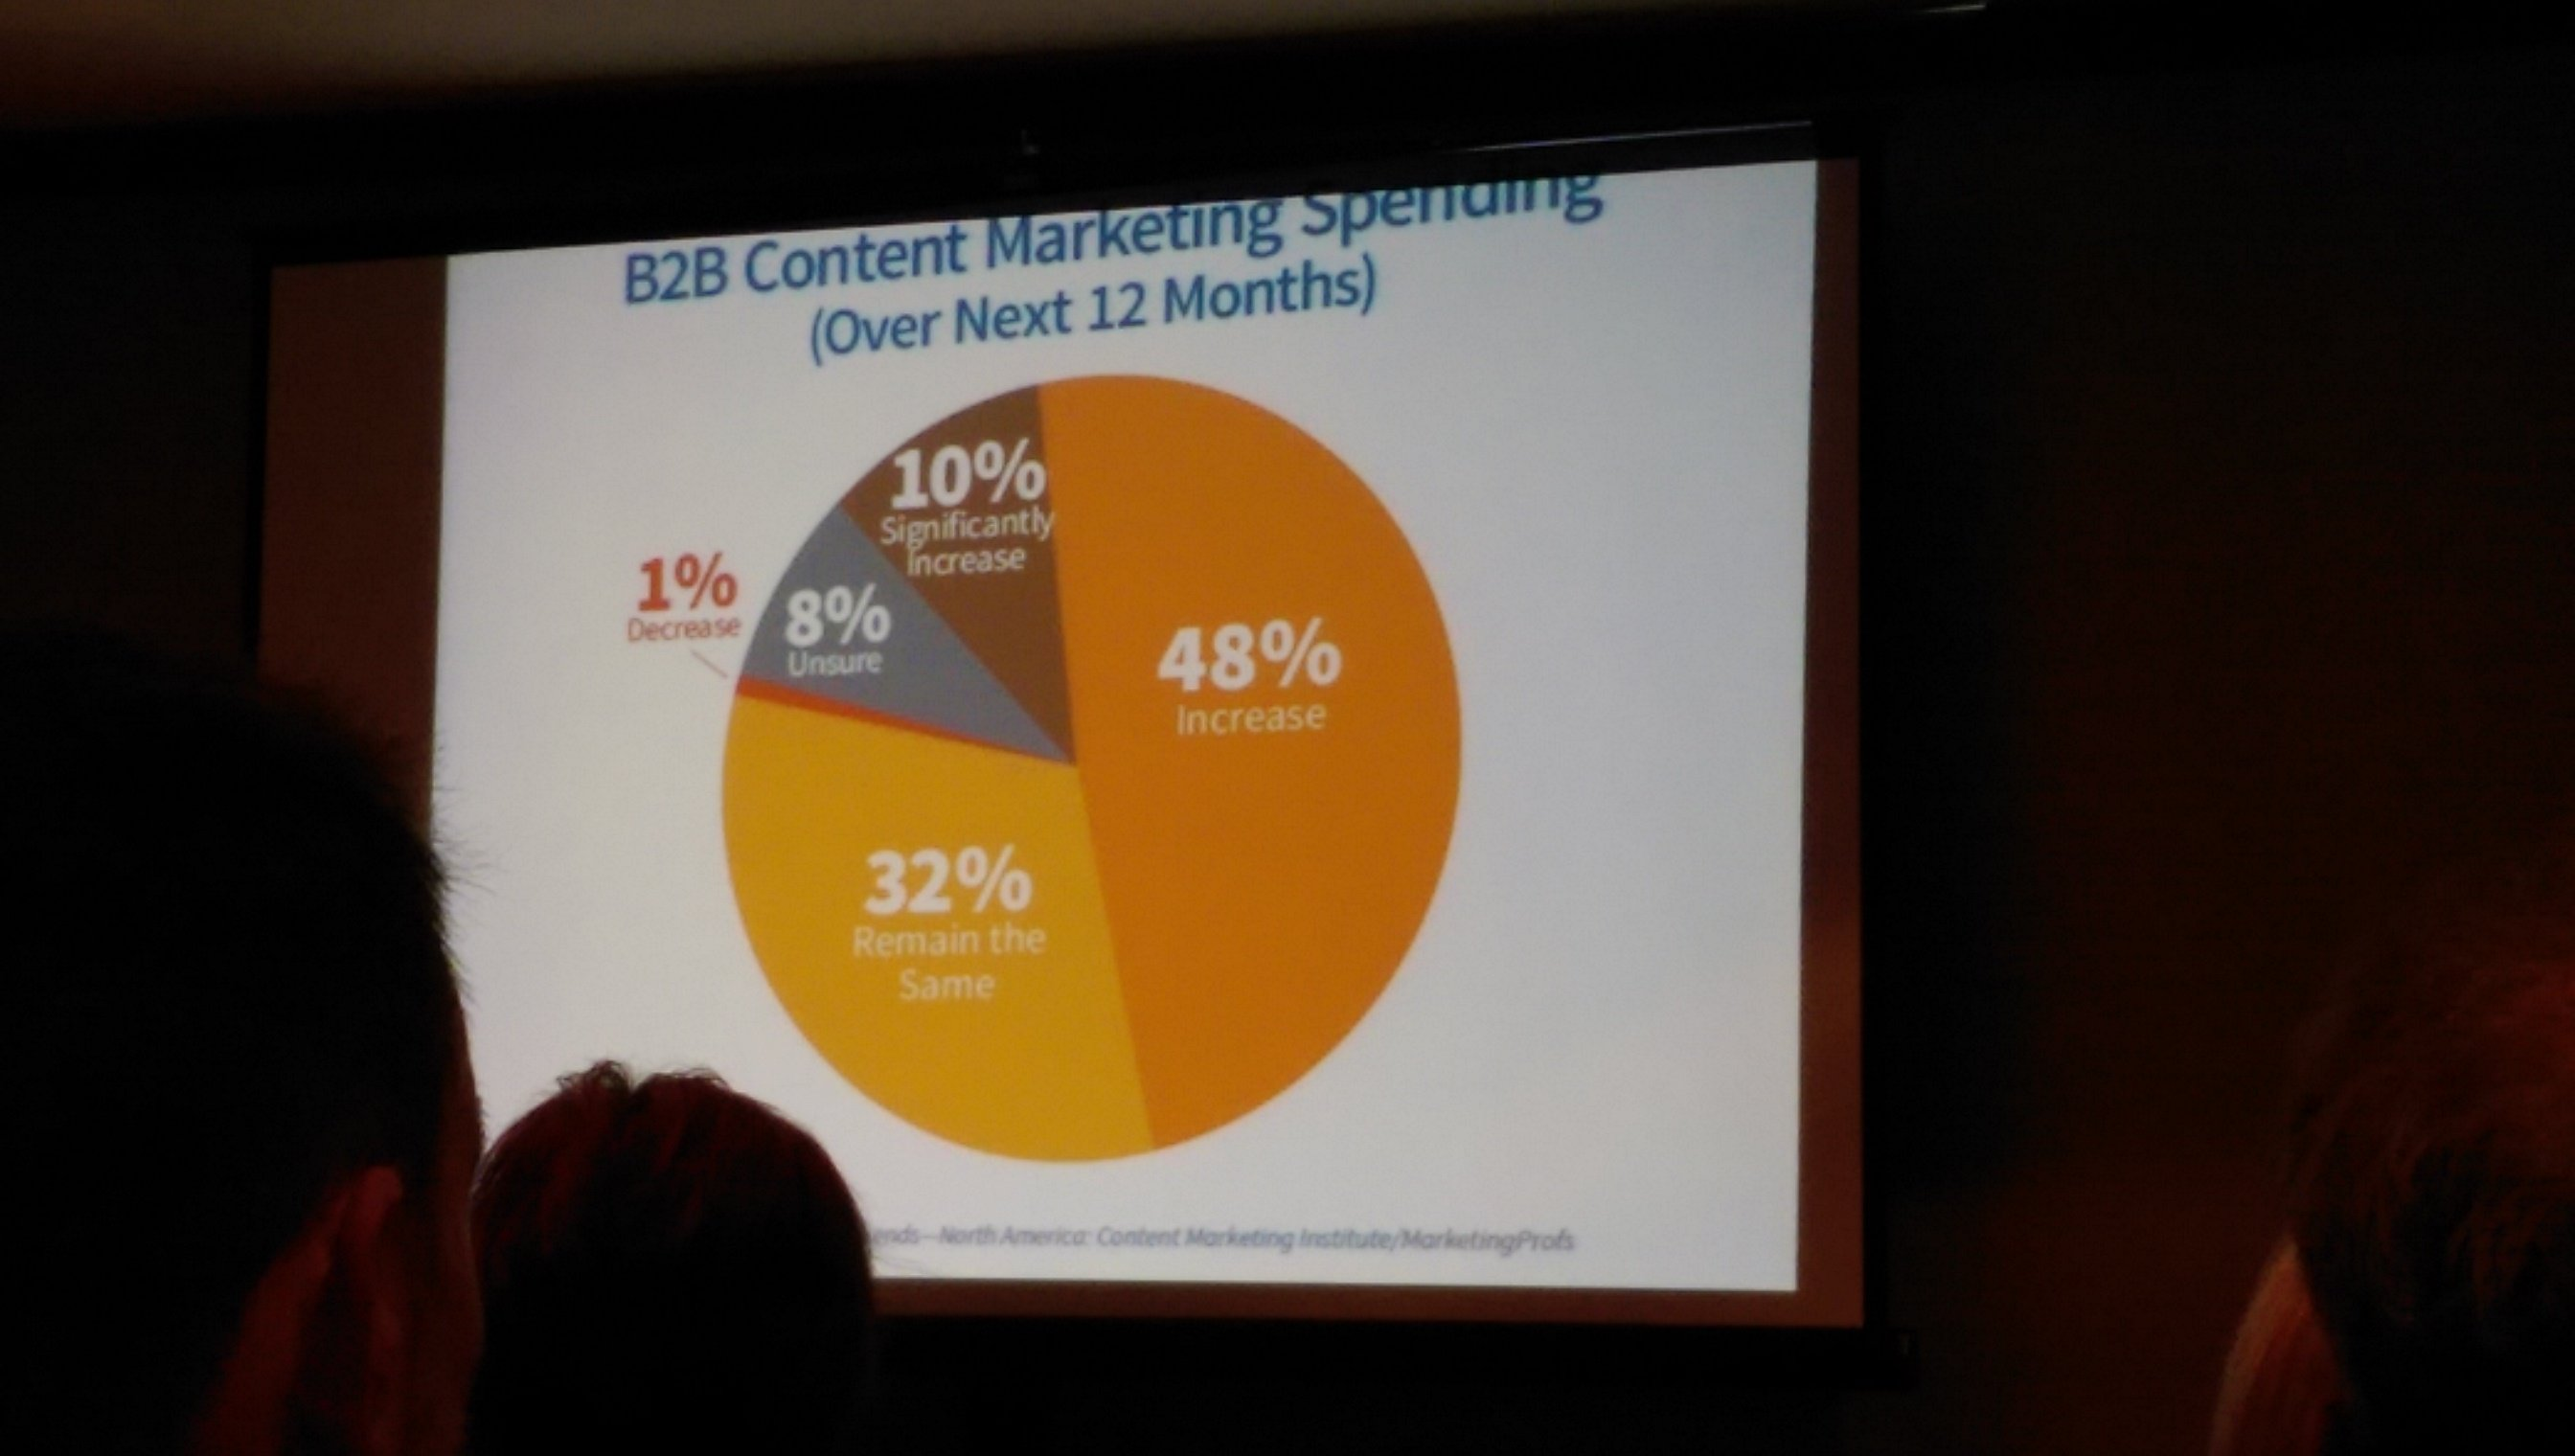 Survey results of expected growth in B2B content marketing spending